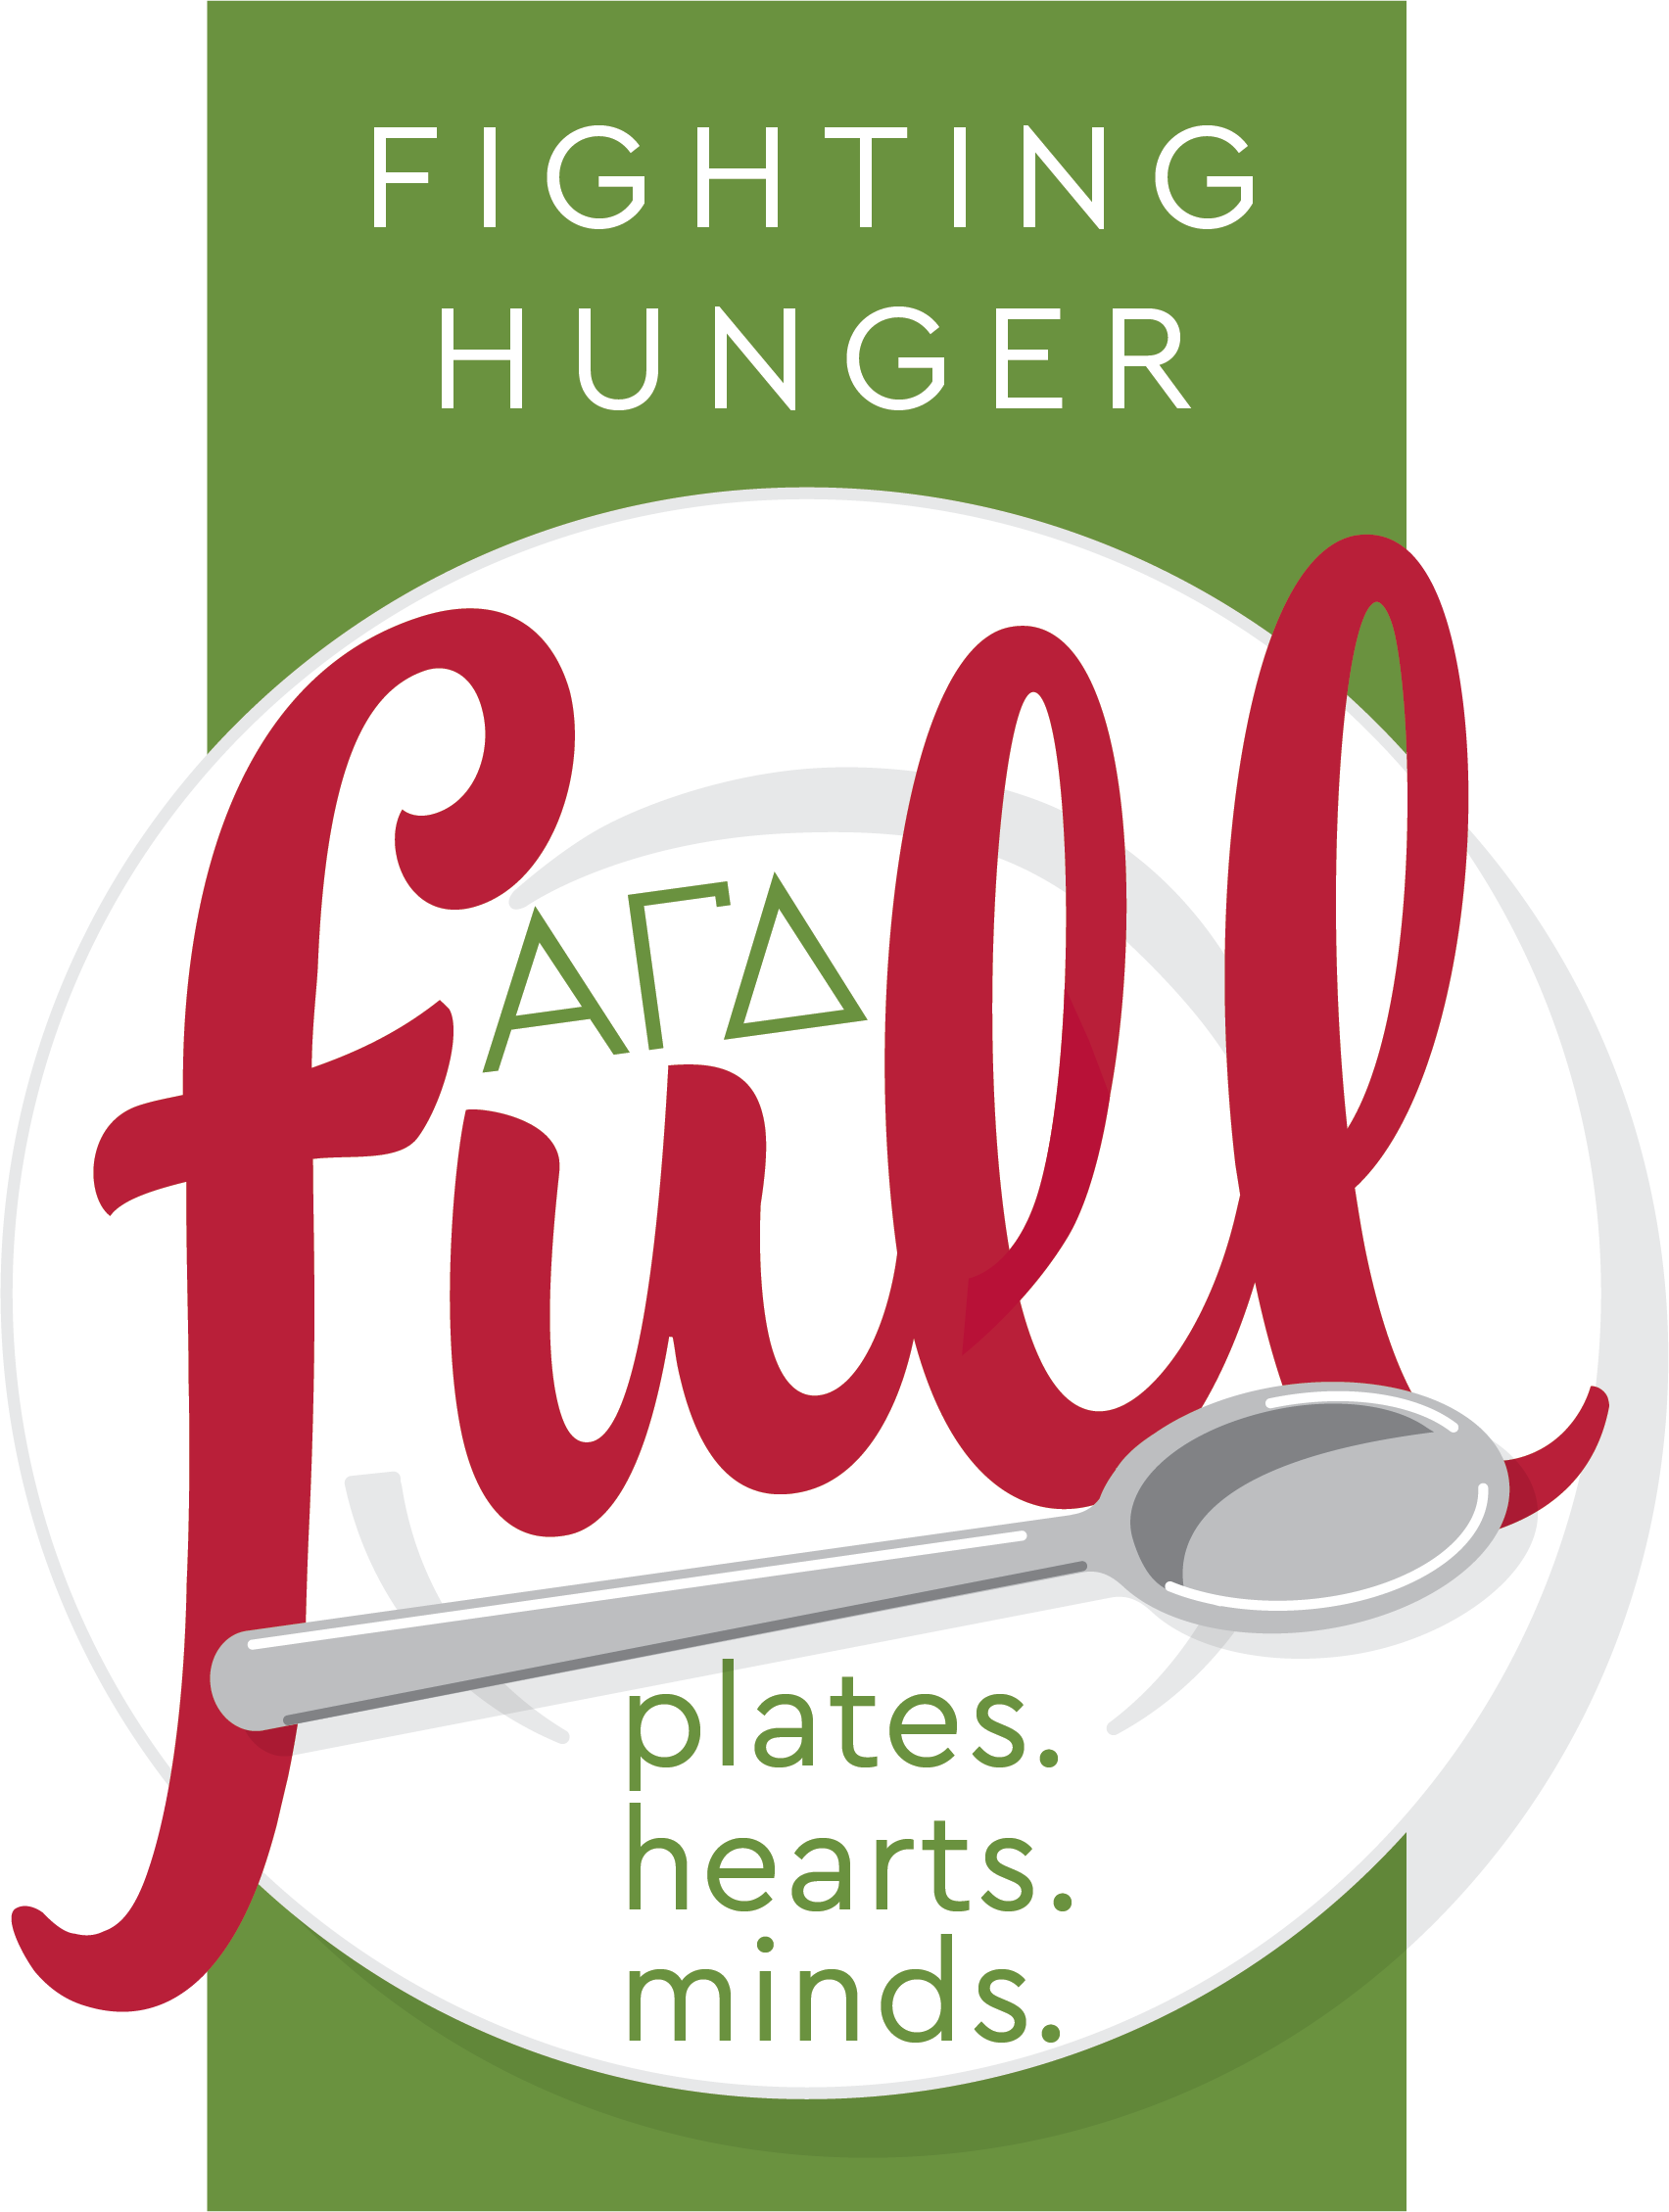 Hungry clipart eating well. Fighting hunger alpha gamma